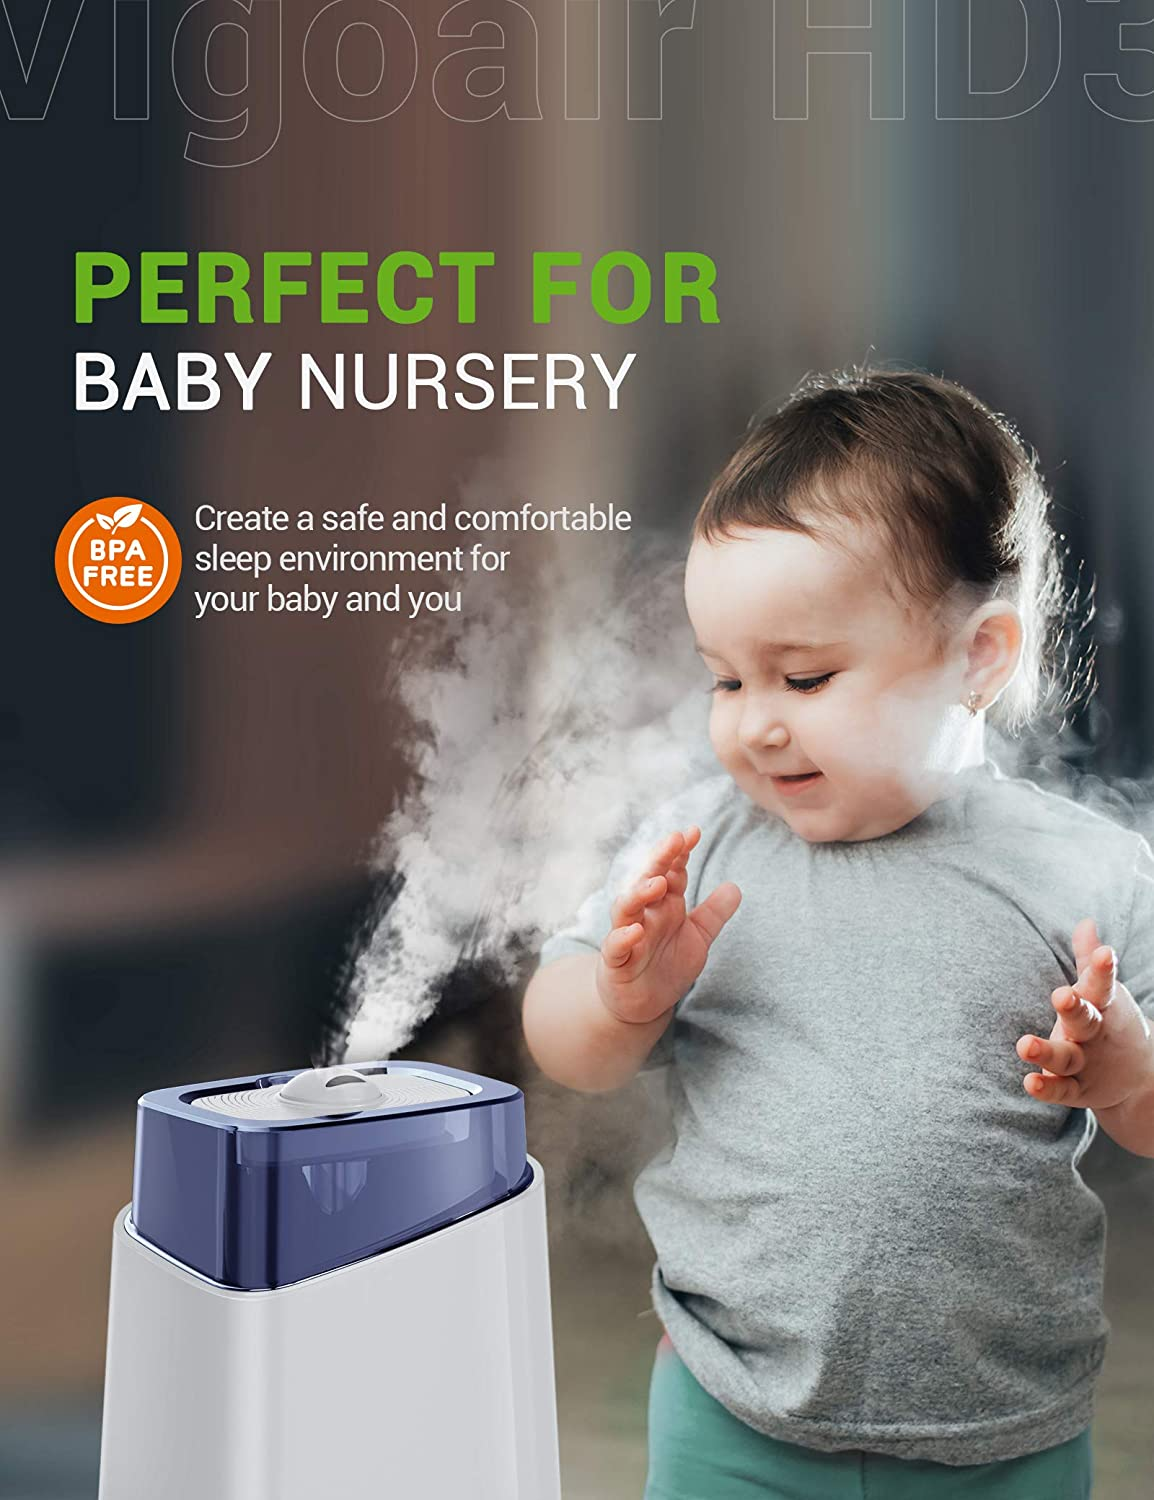 Baby 360/° Nozzle up to75 Hours Runtime 26dB Quiet Ultrasonic Humidifiers for Large Bedroom BPA-Free Ideal for Plants Office Kyvol Vigoair HD3 Humidifier Home Auto Shut-off 4.5L Cool Mist Humidifiers